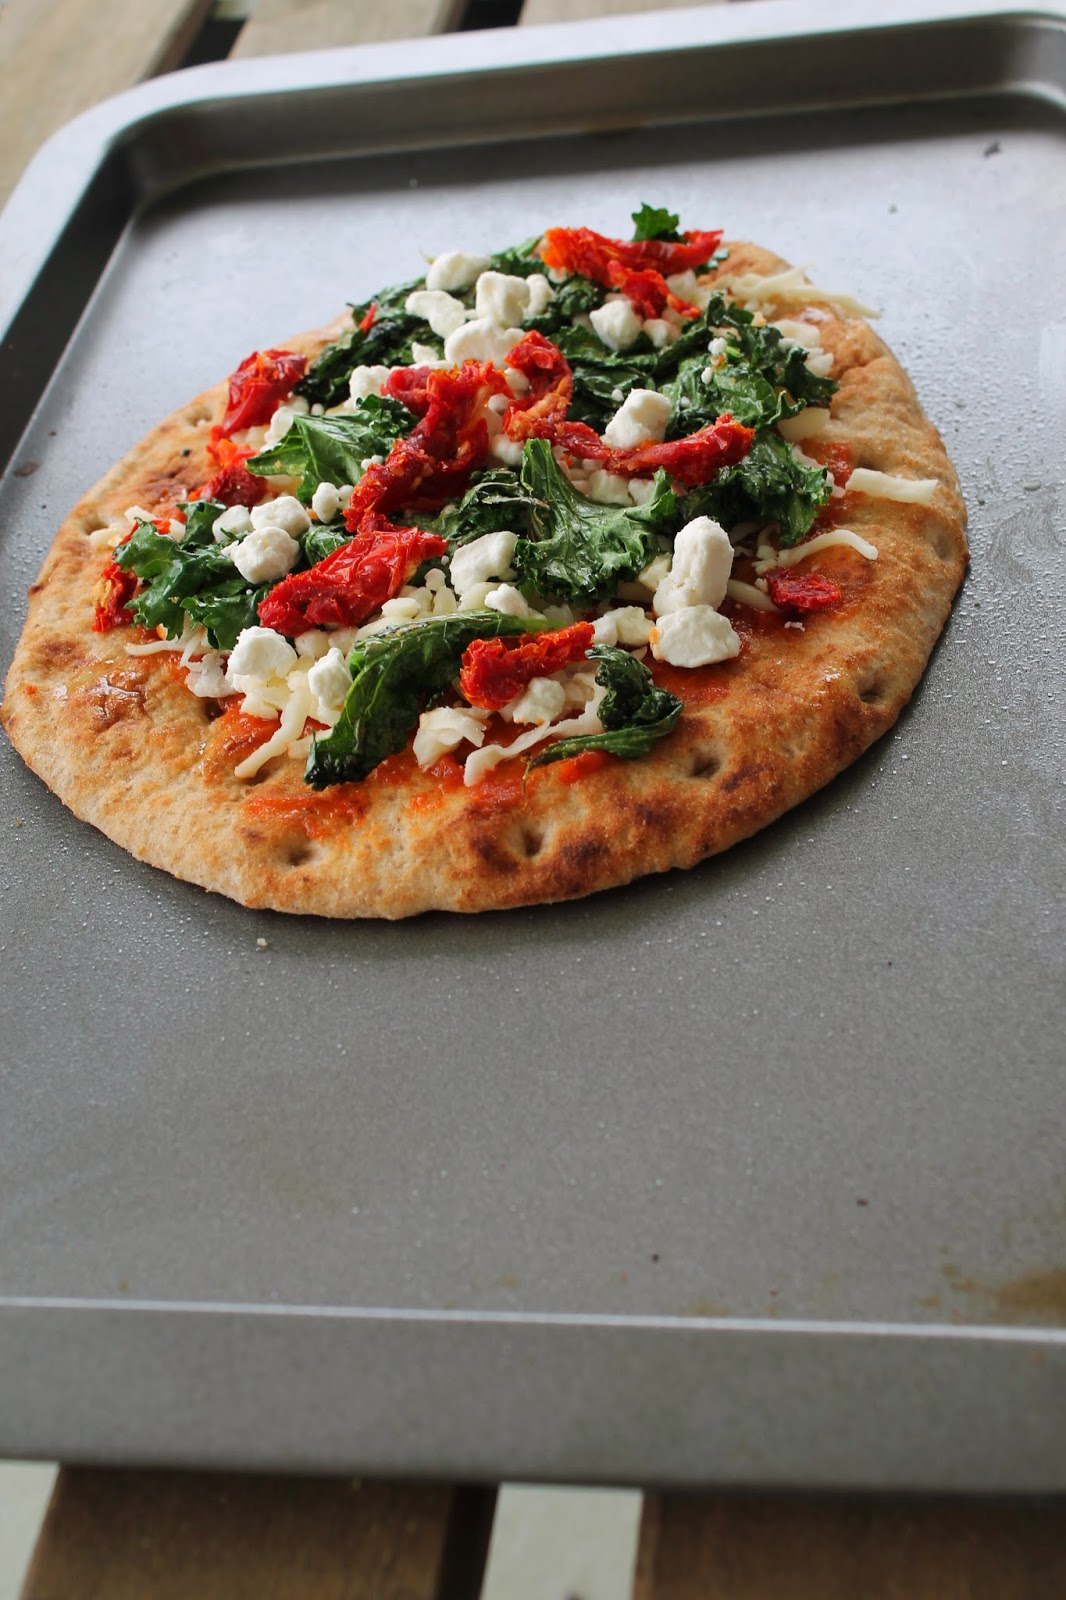 2 Heat Olive Oil Over Medium In A Saute Pan And Cook Kale Until Wilted 3 Top Flatbread With Sauce Cheeses Sun Dried Tomatoes